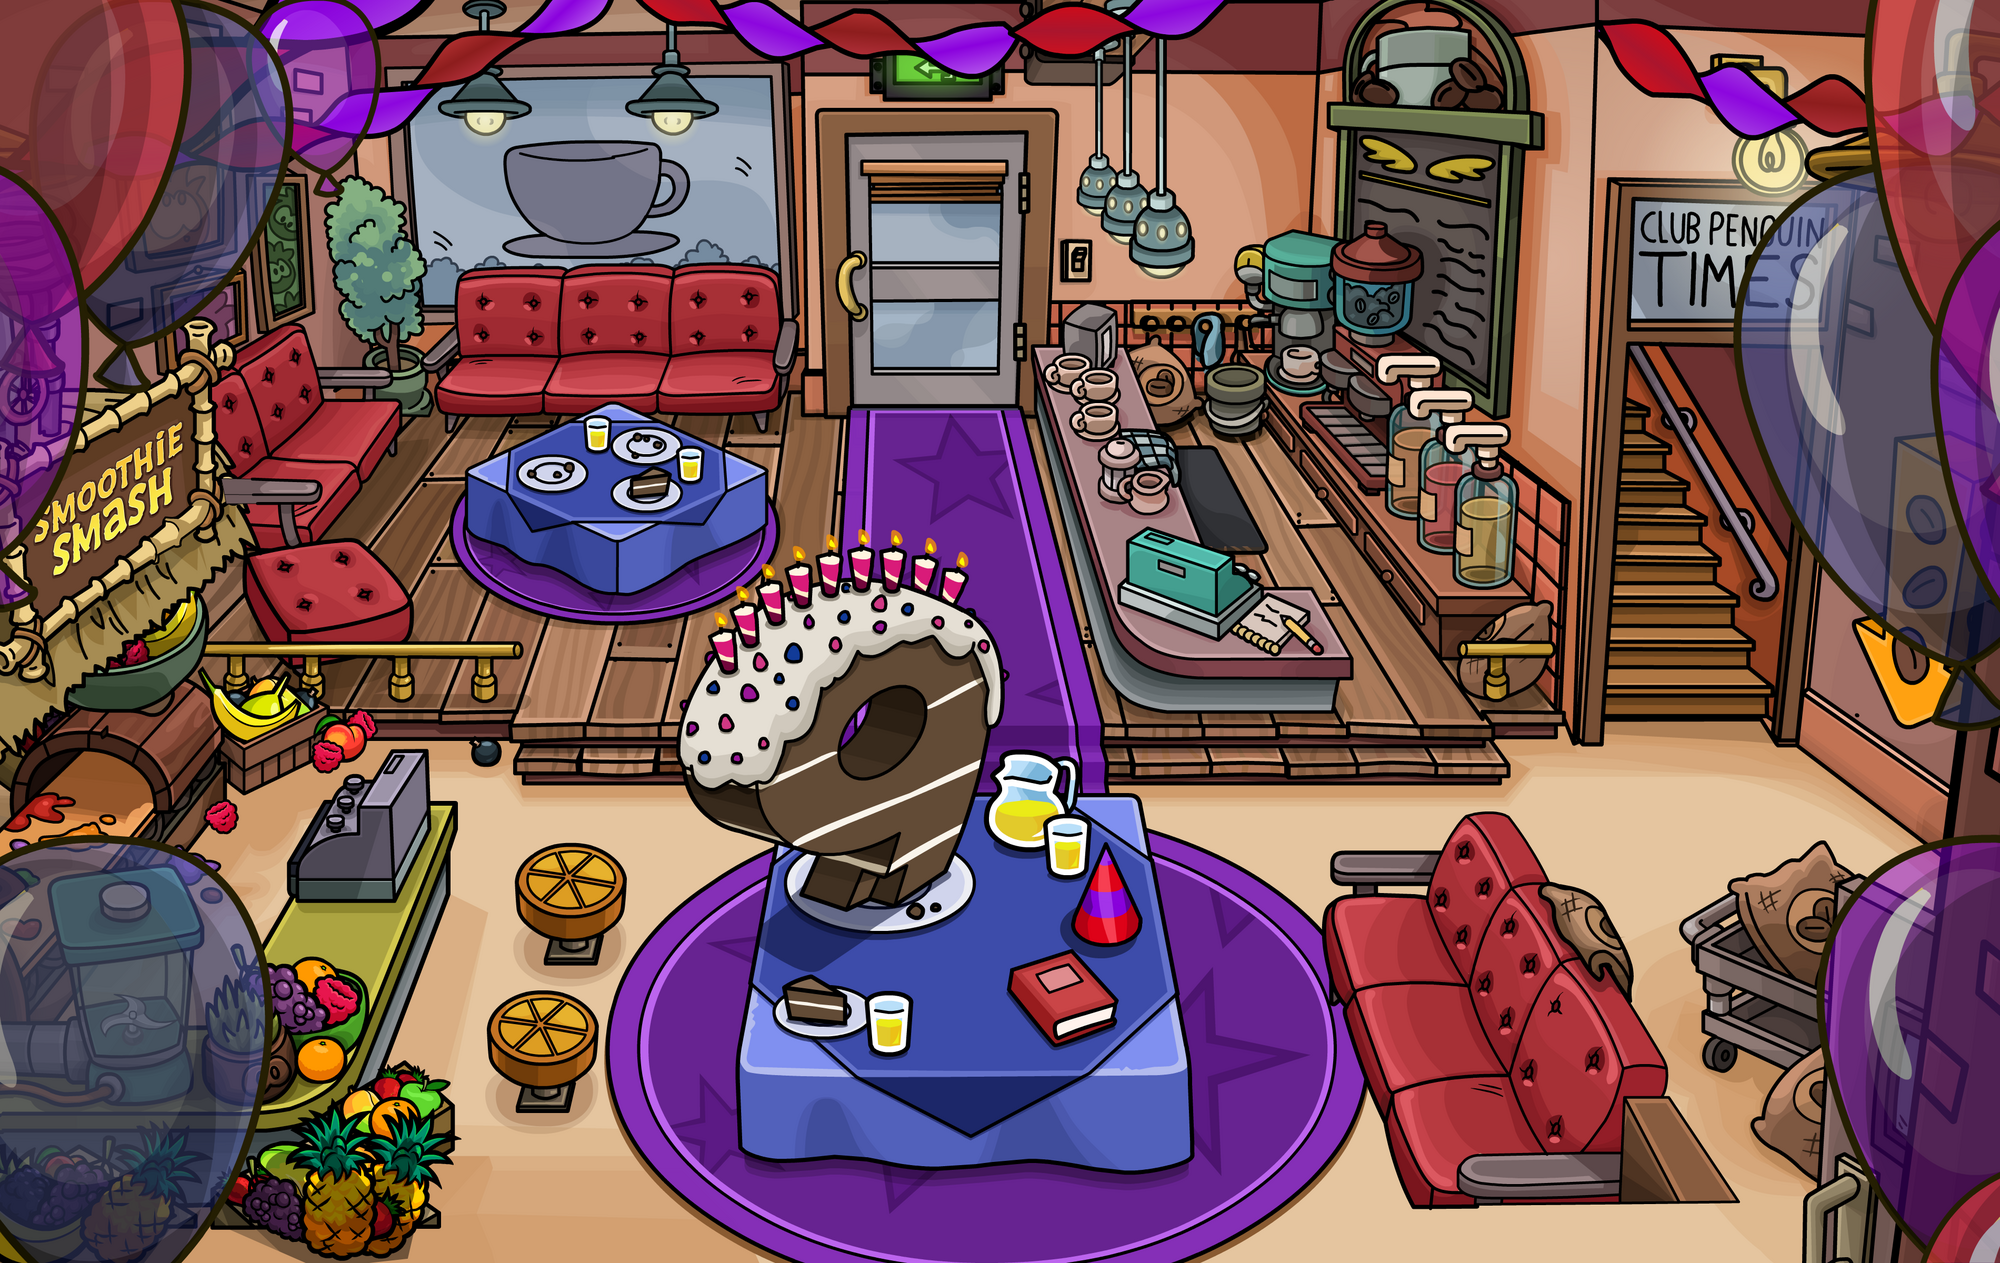 Th anniversary party club penguin wiki fandom powered by